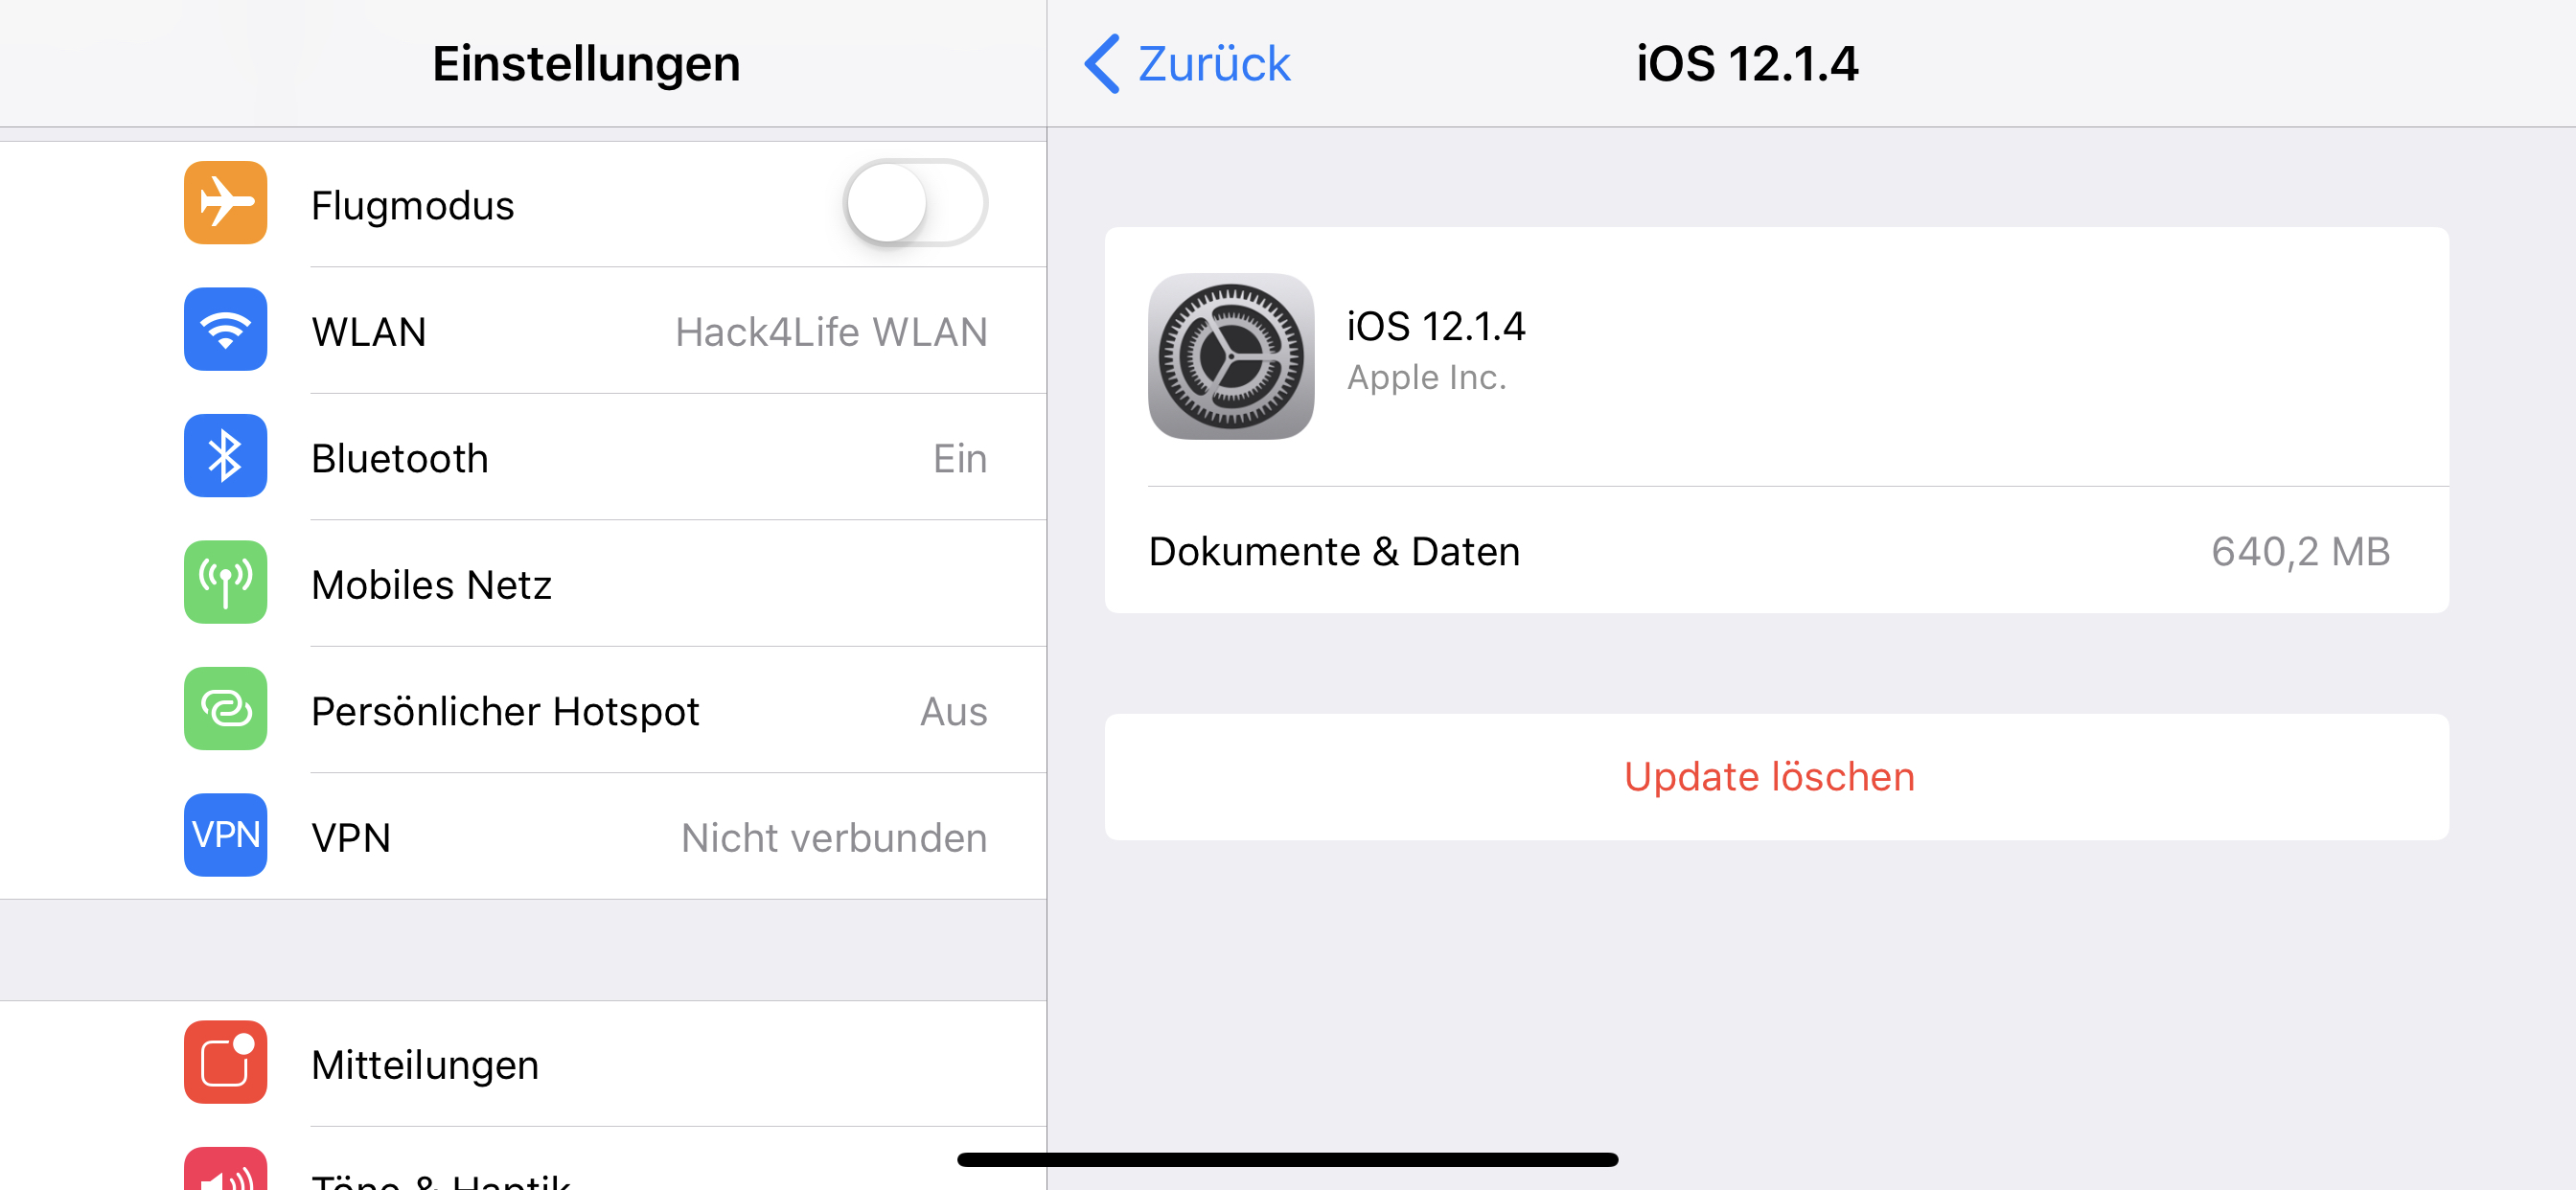 Delete iOS 12 OTA Update in the settings, Hack4Life, Fabian Geissler